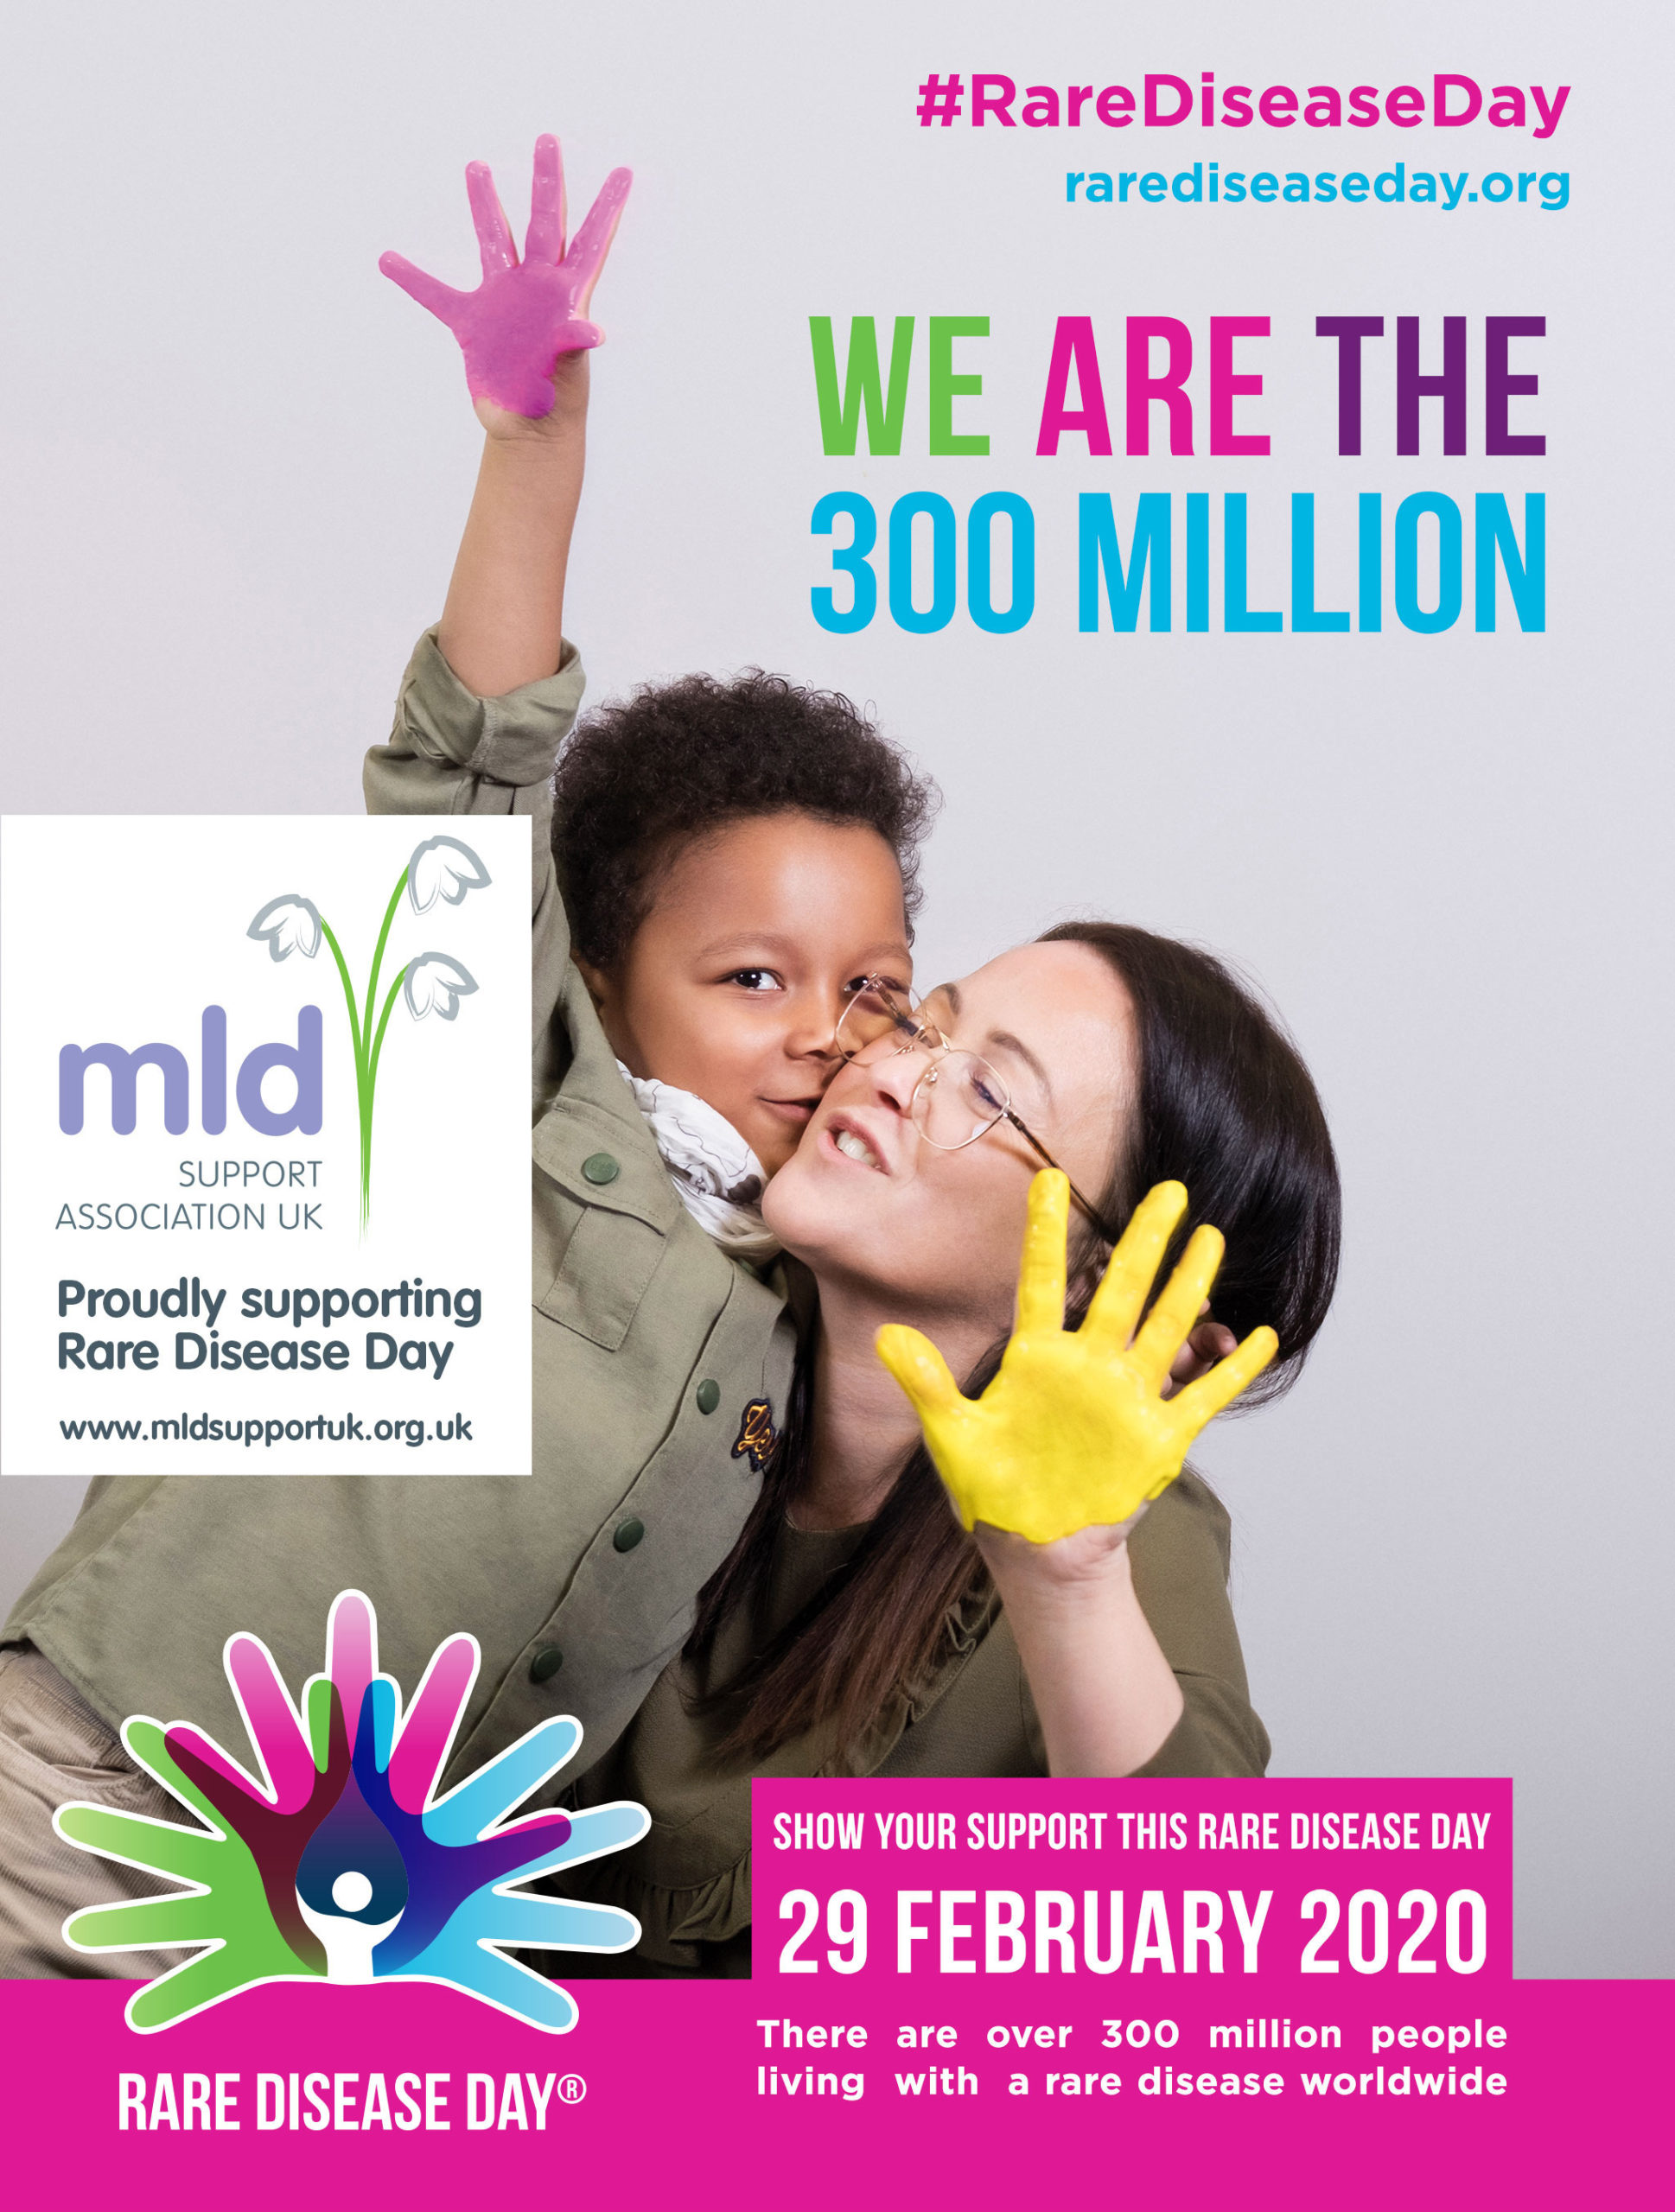 MLD Support Association UK proudly supporting Rare Disease Day